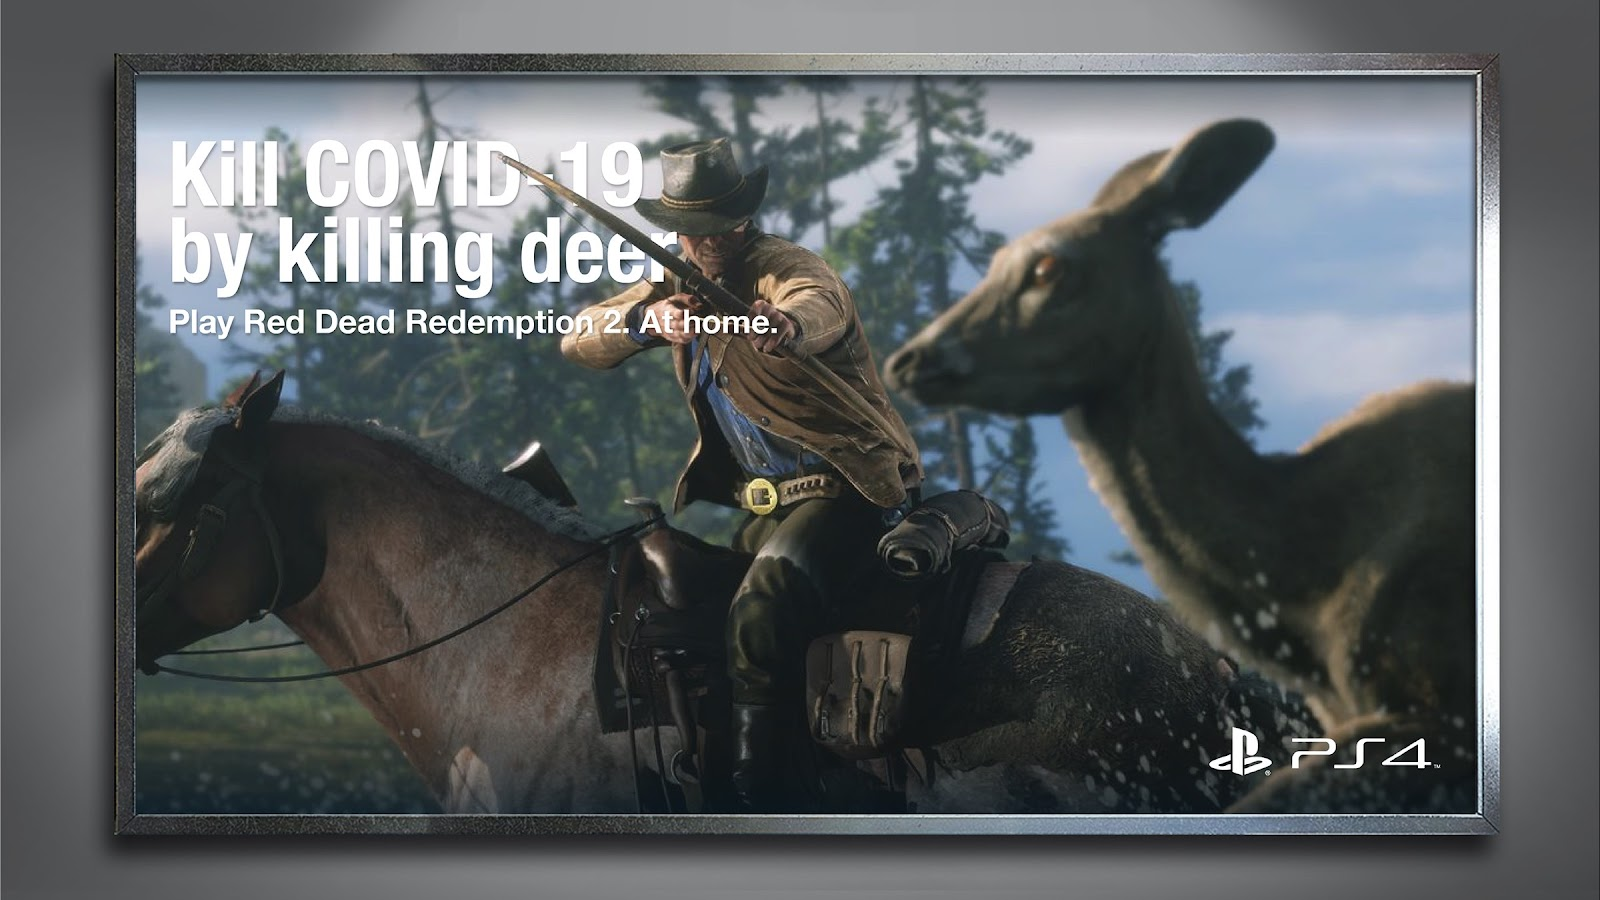 "PS4's poster of the game Red Dead Redemption 2, with the text, ""Kill Covid-19 by killing deer. Play Red Dead Redemption 2. At home."""